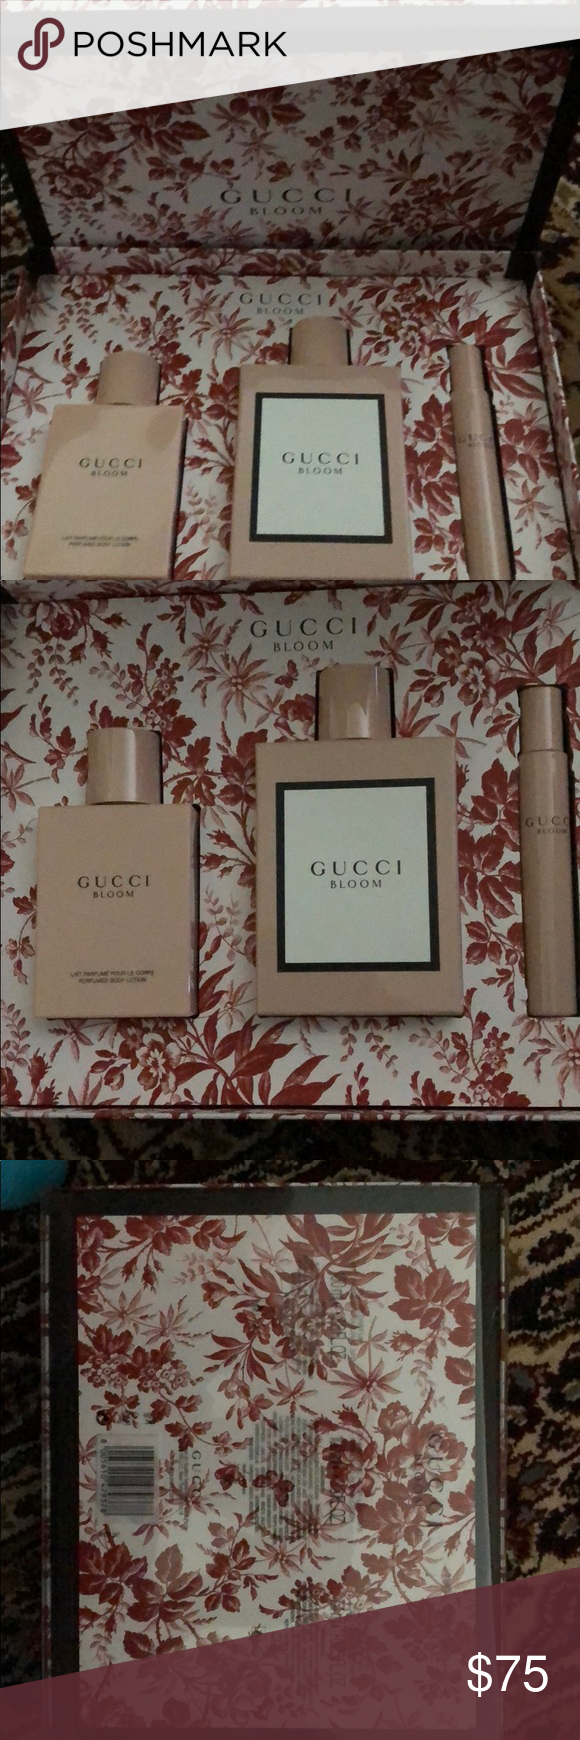 Gucci Bloom Boxed Set Parfum Lotion Fragrance Pen Fragrance Lotion Bloom